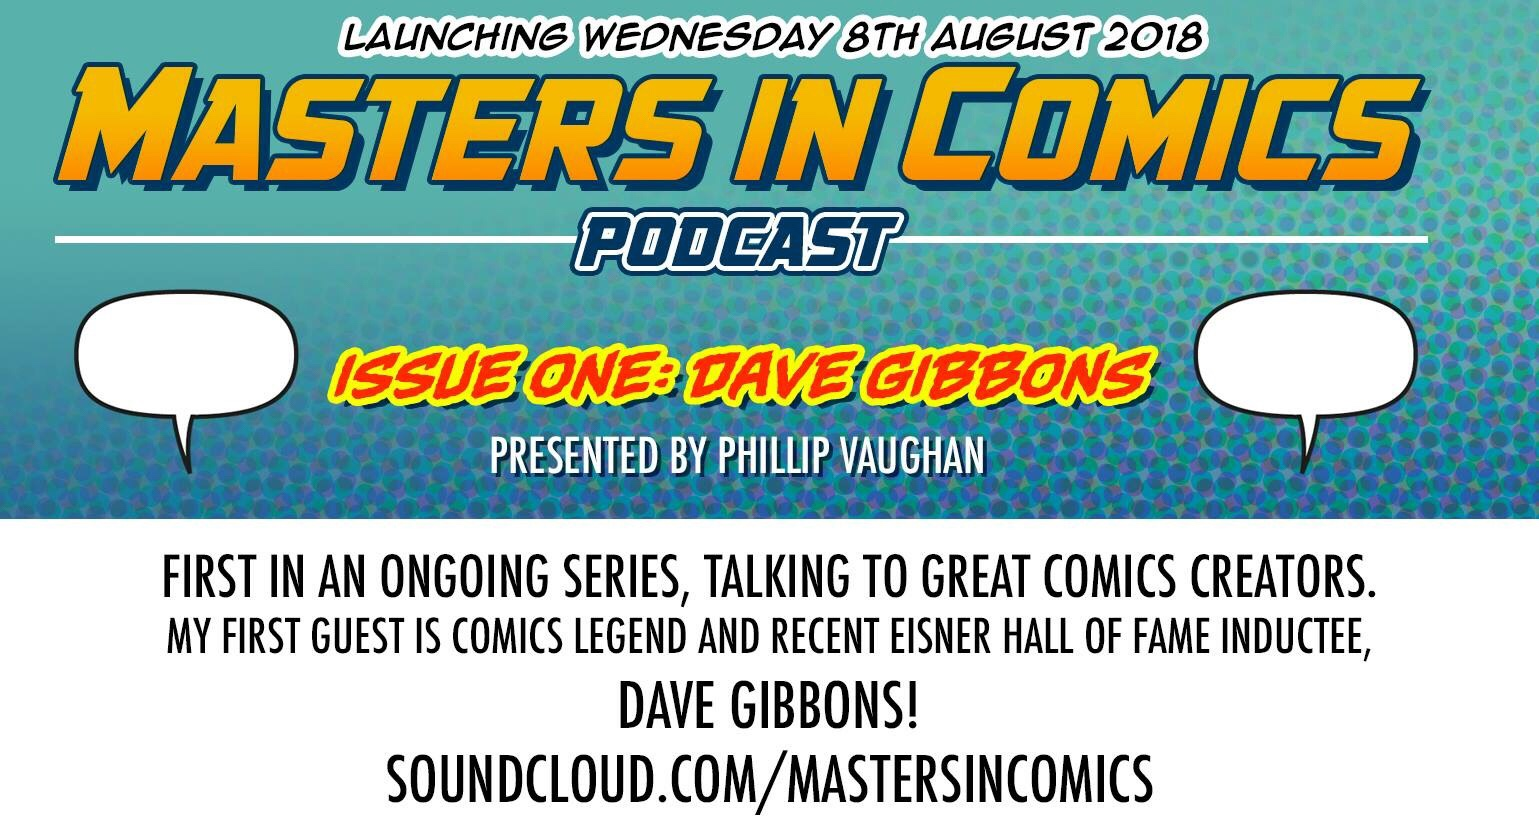 Masters in Comics Podcast Promtioonal Image